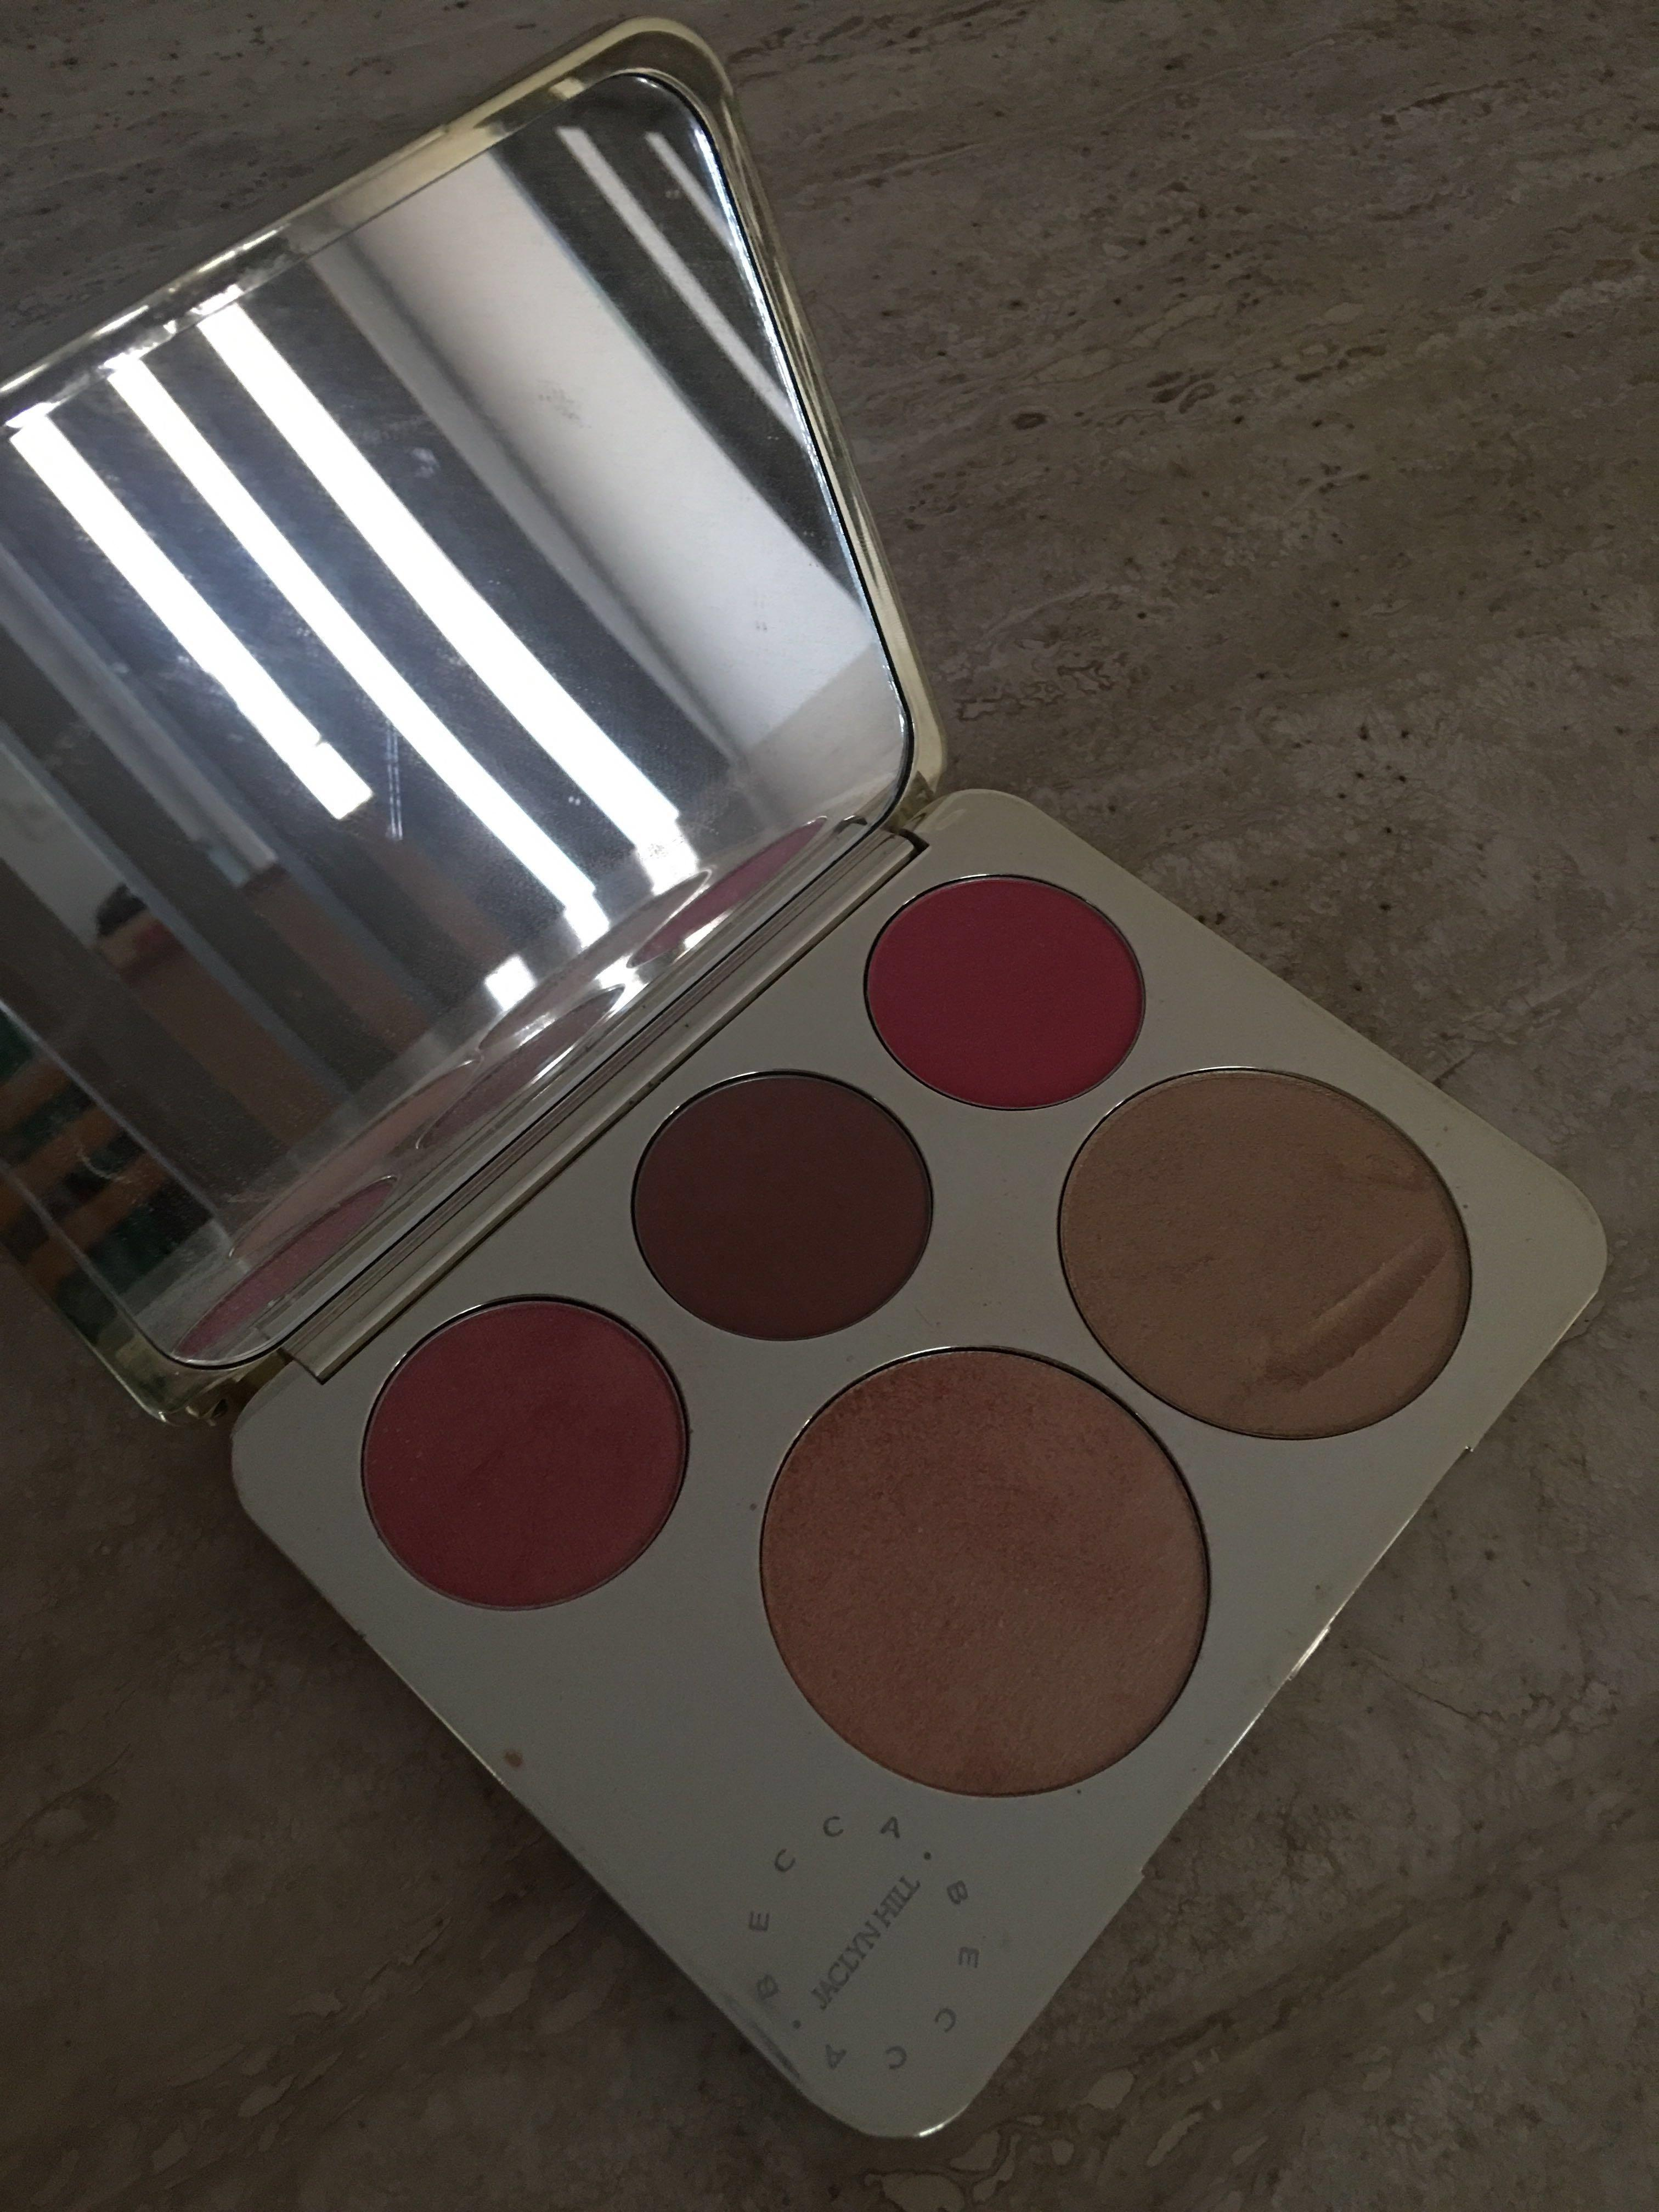 BECCA x Jaclyn Hill Champagne Collection Highlighting/Blush Palette